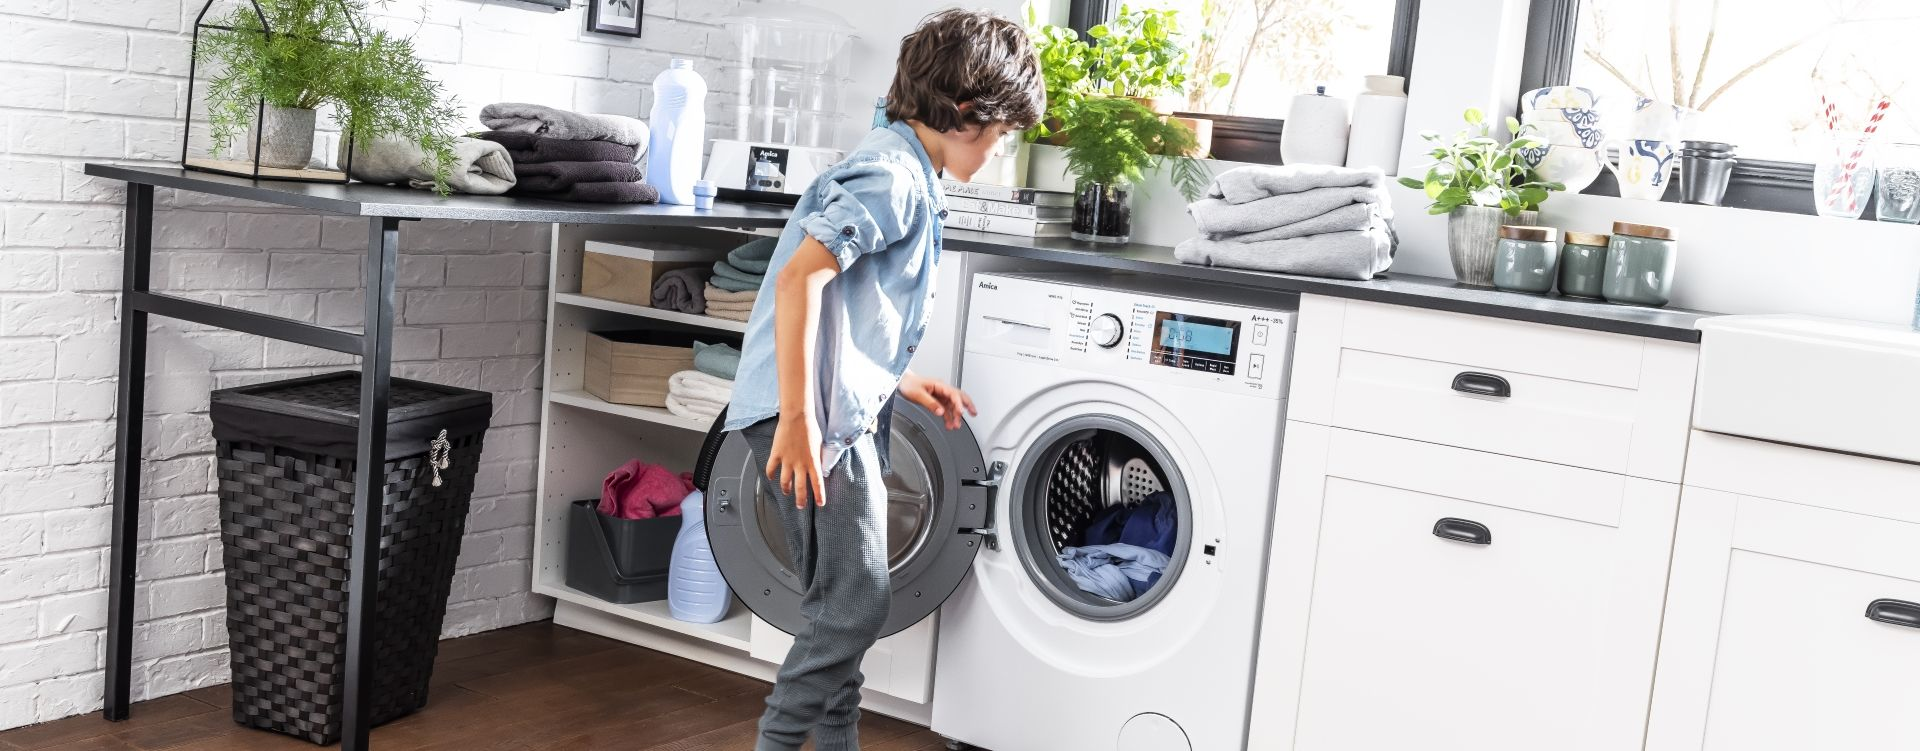 Freestanding Amica Washing Machine